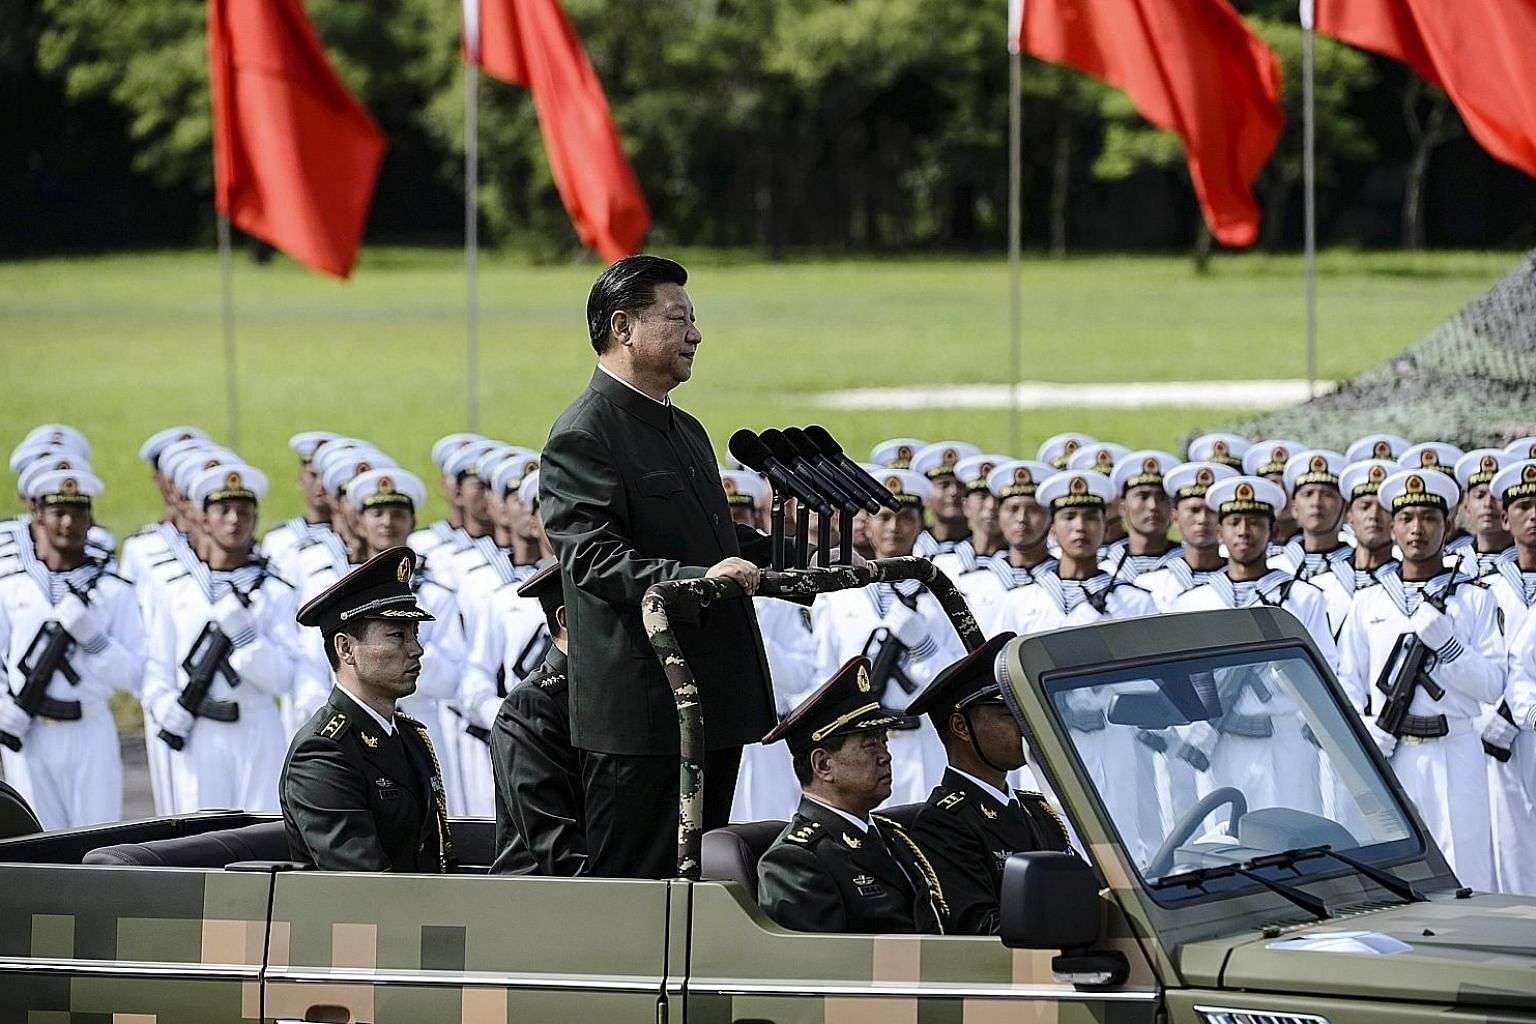 Chinese President Xi Jinping inspecting the People's Liberation Army Garrison in Hong Kong yesterday. Mr Xi will attend the investiture of new Chief Executive Carrie Lam and her government today.